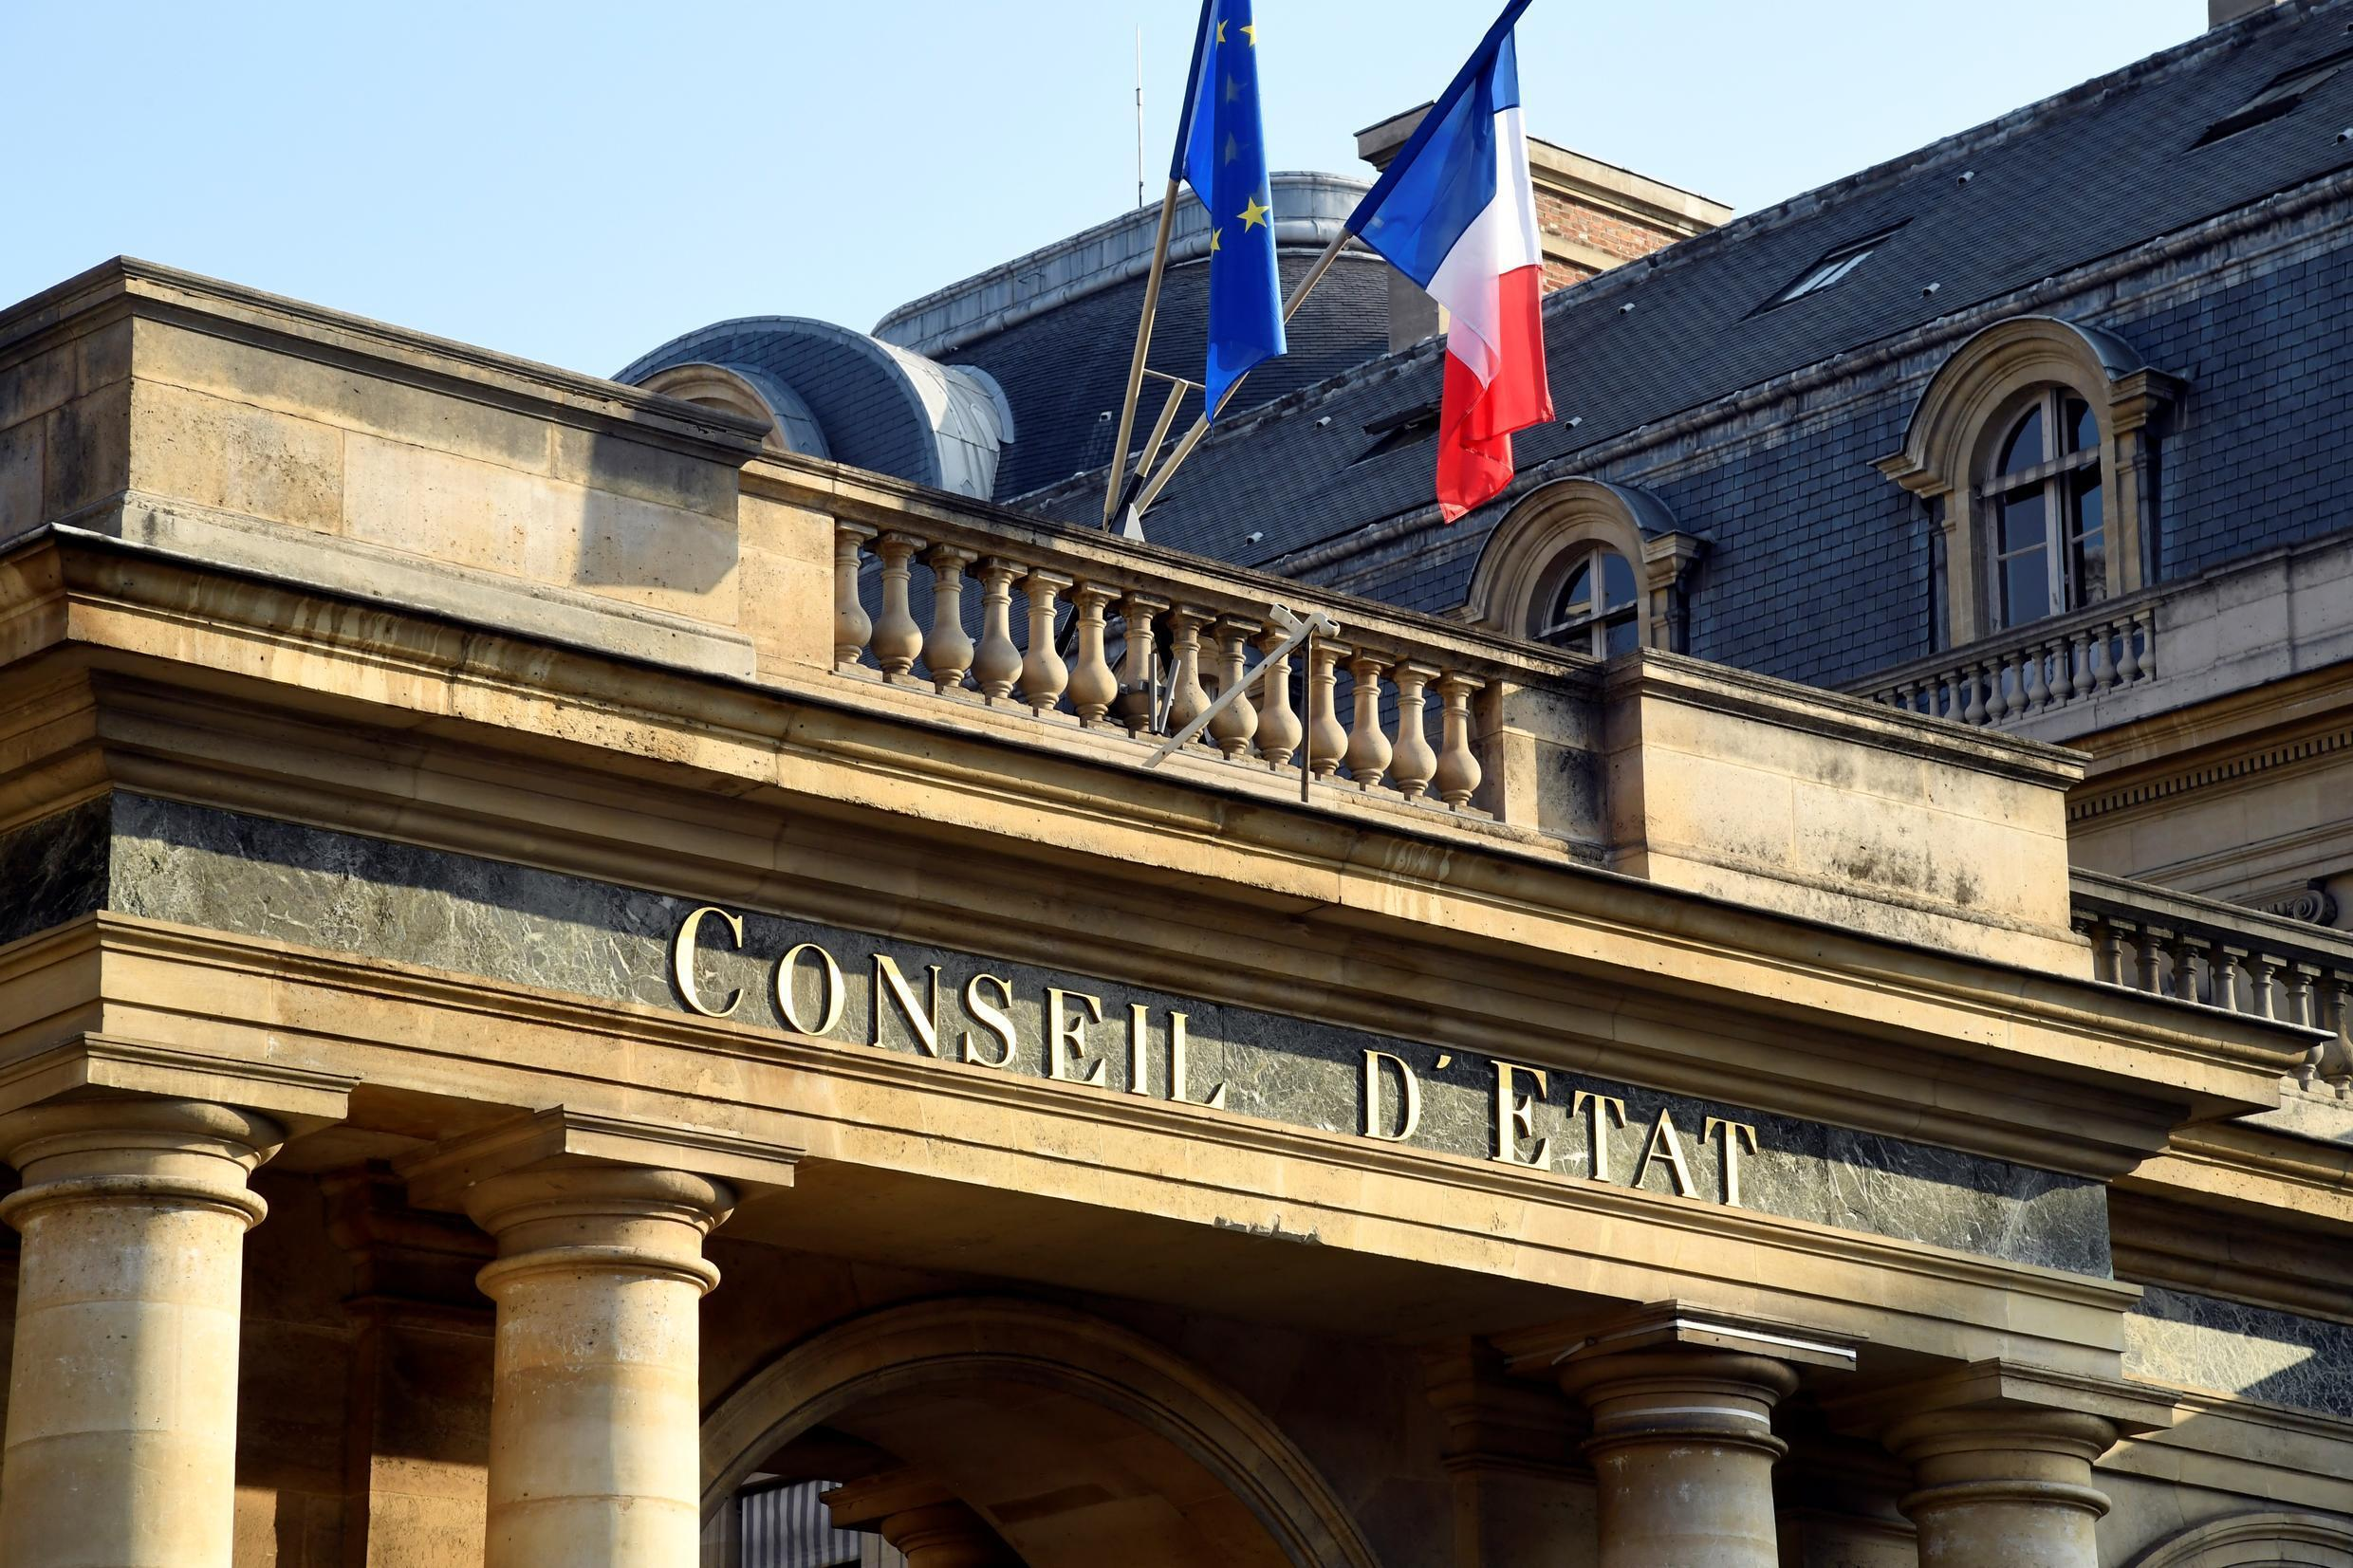 The Council of State, in Paris, is France's highest administrative court.